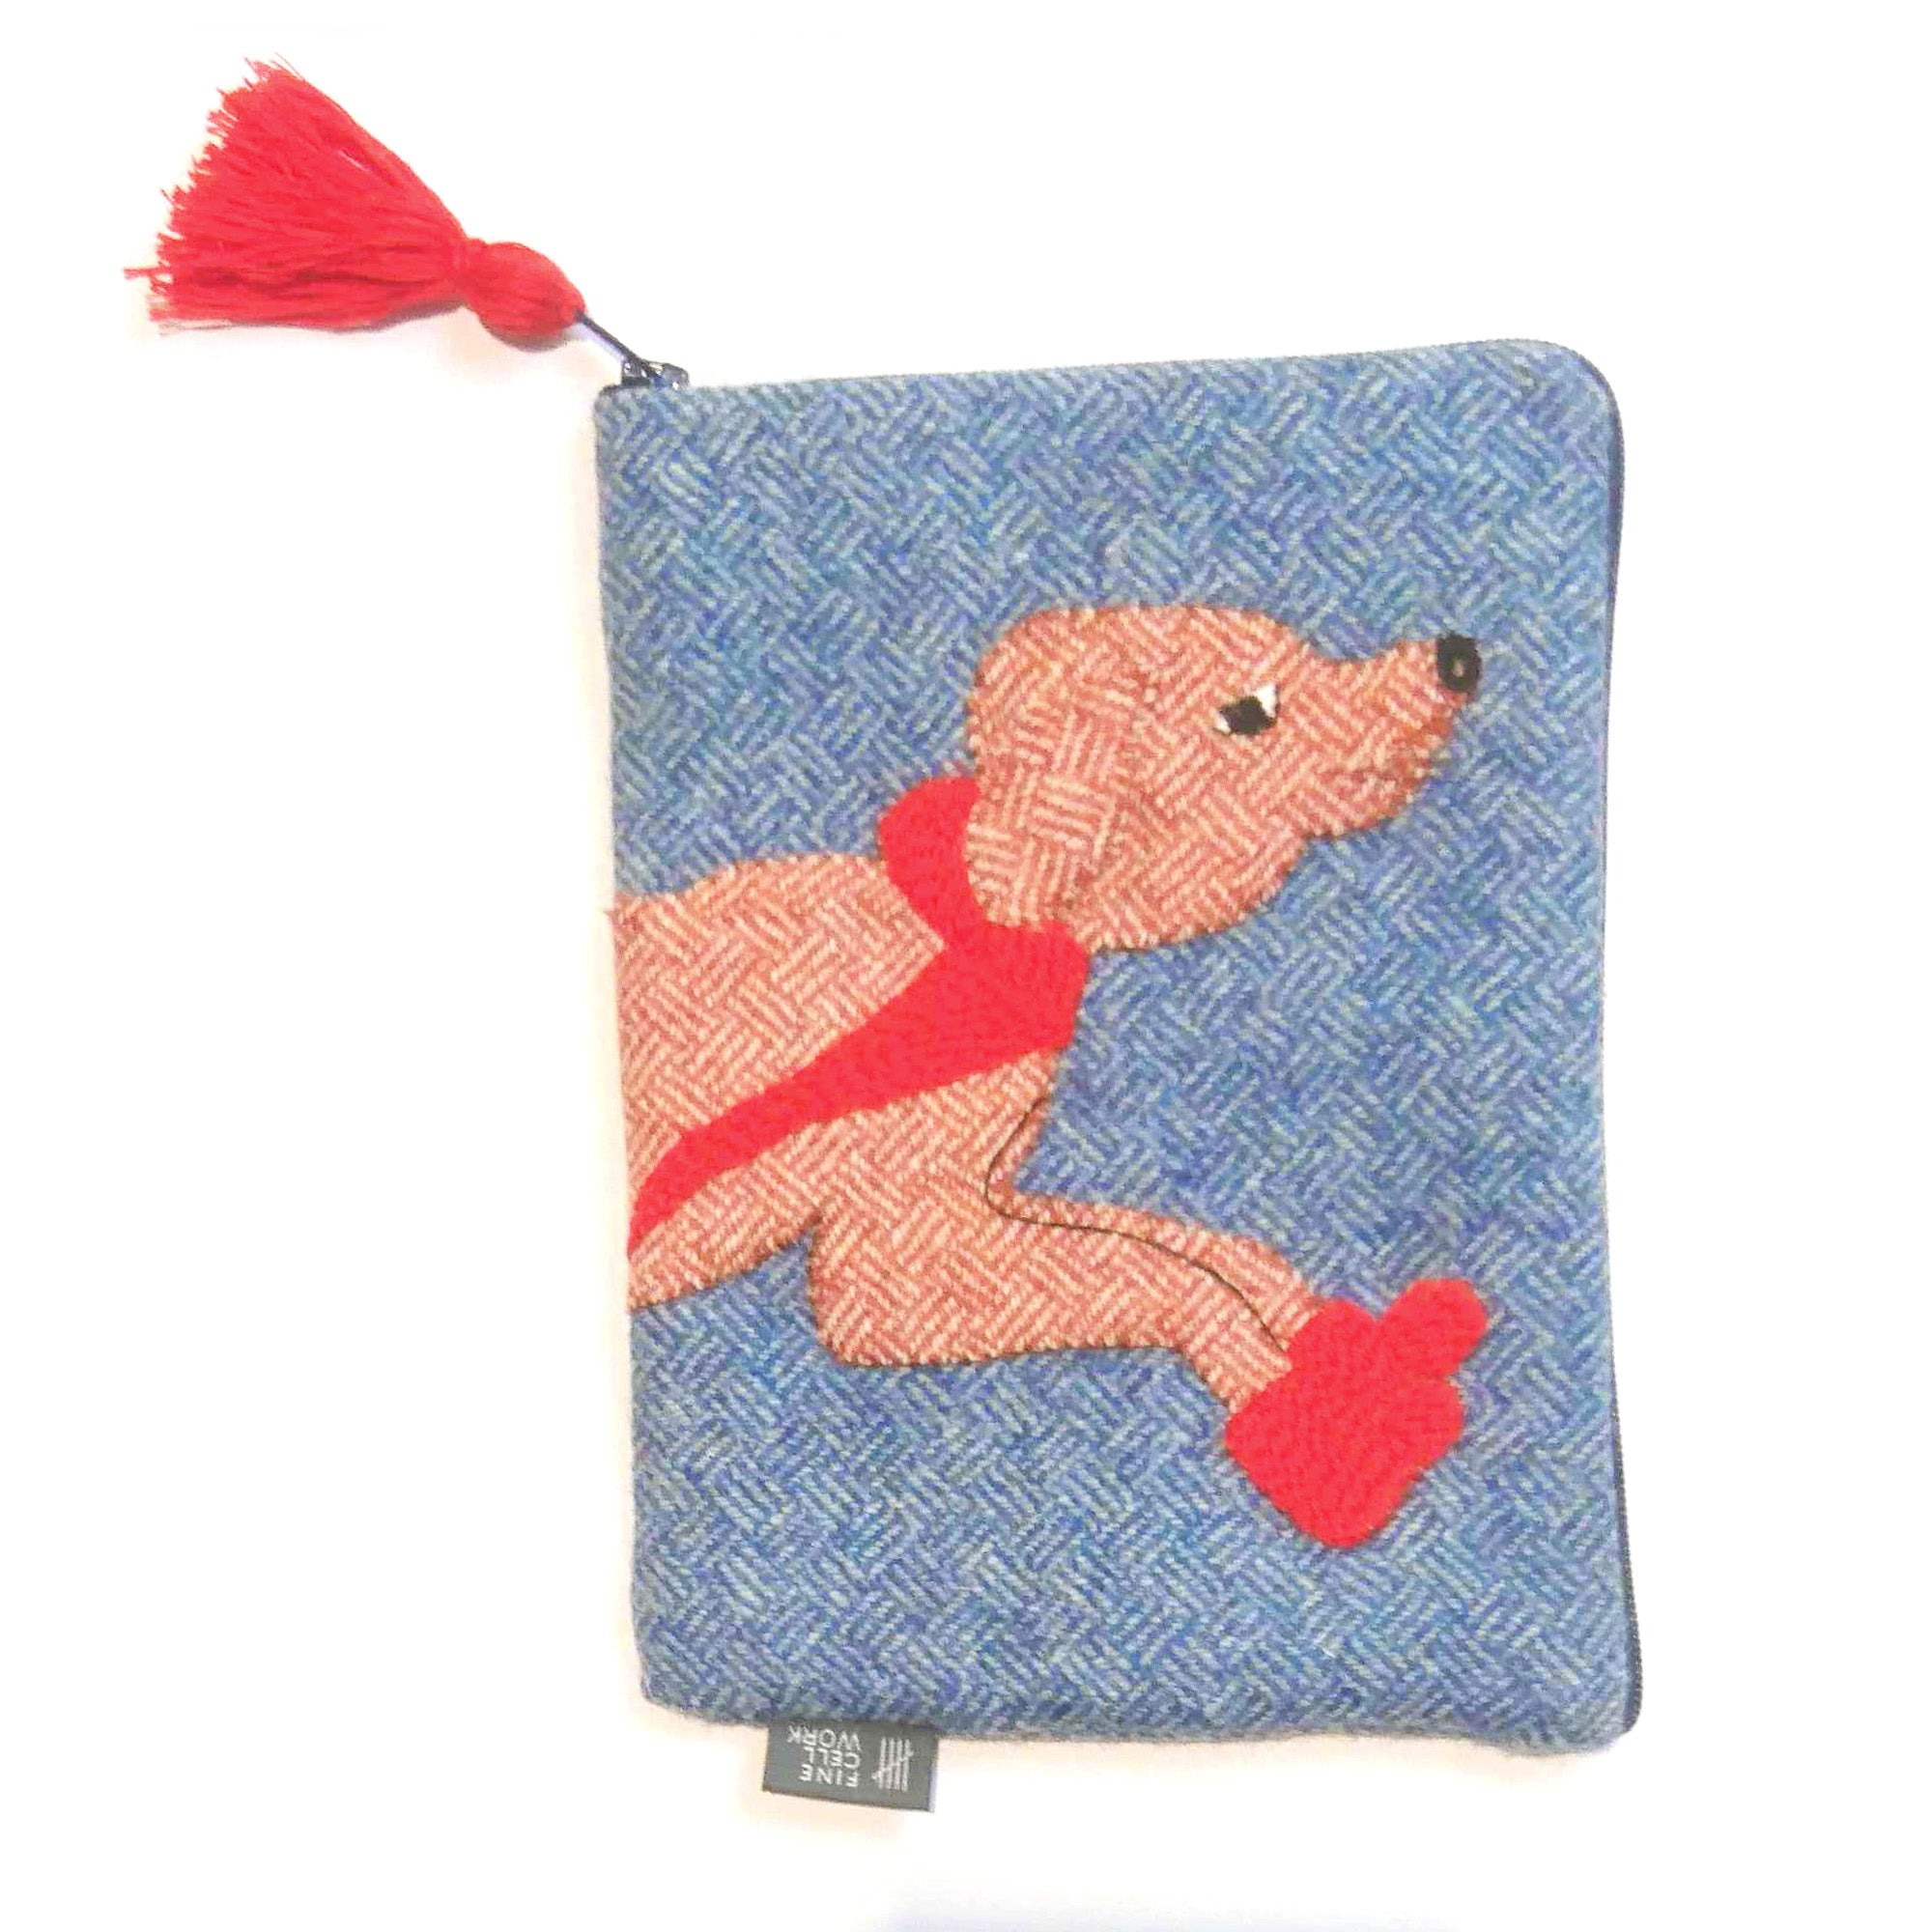 Barney the Dog Appliqué Tweed Pouch Small